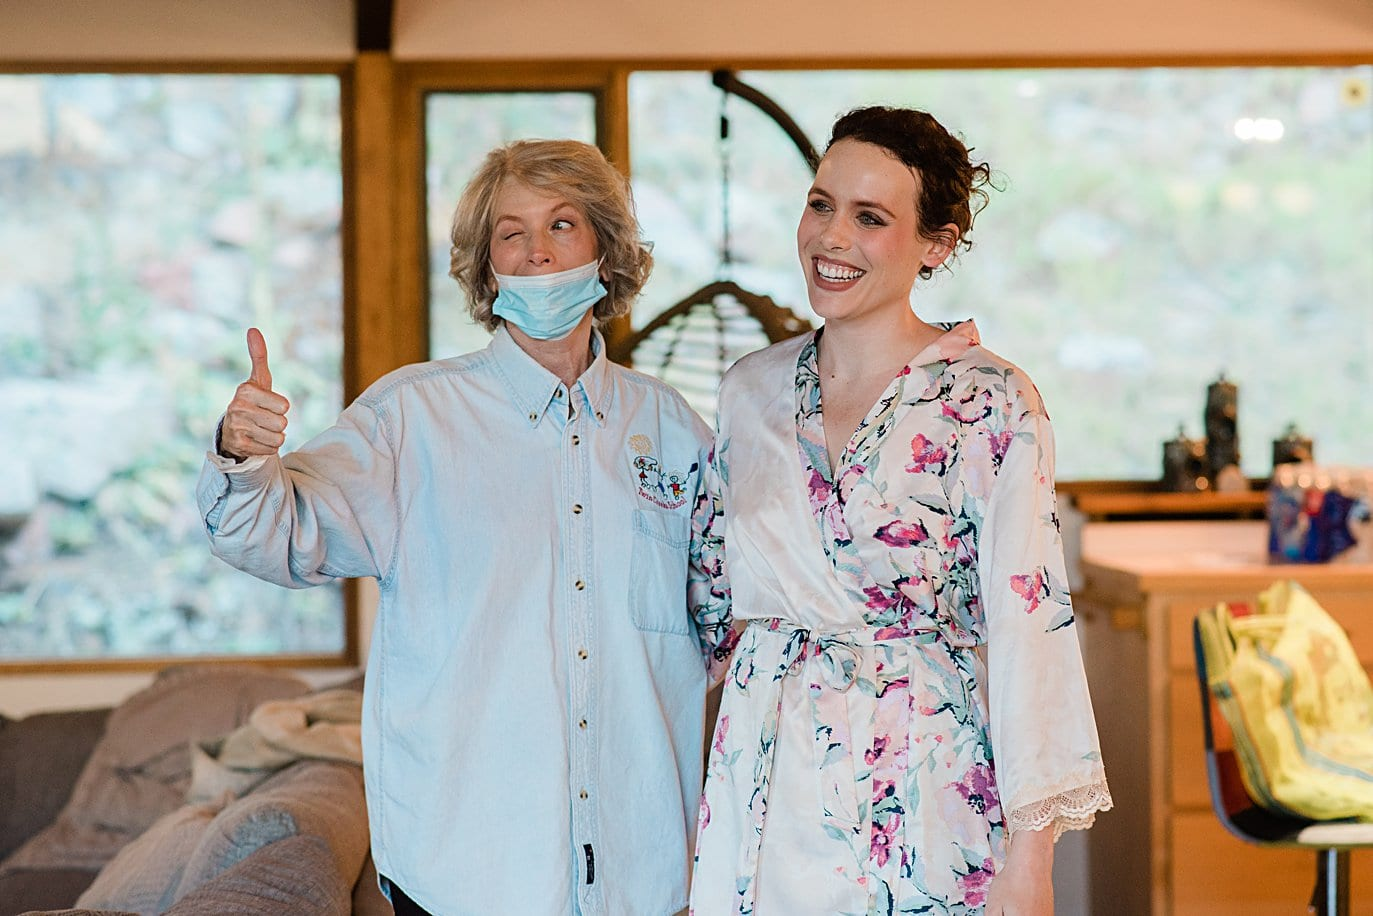 bride with mom during getting ready during COVID at Colorado wedding by boulder wedding photographer Jennie Crate